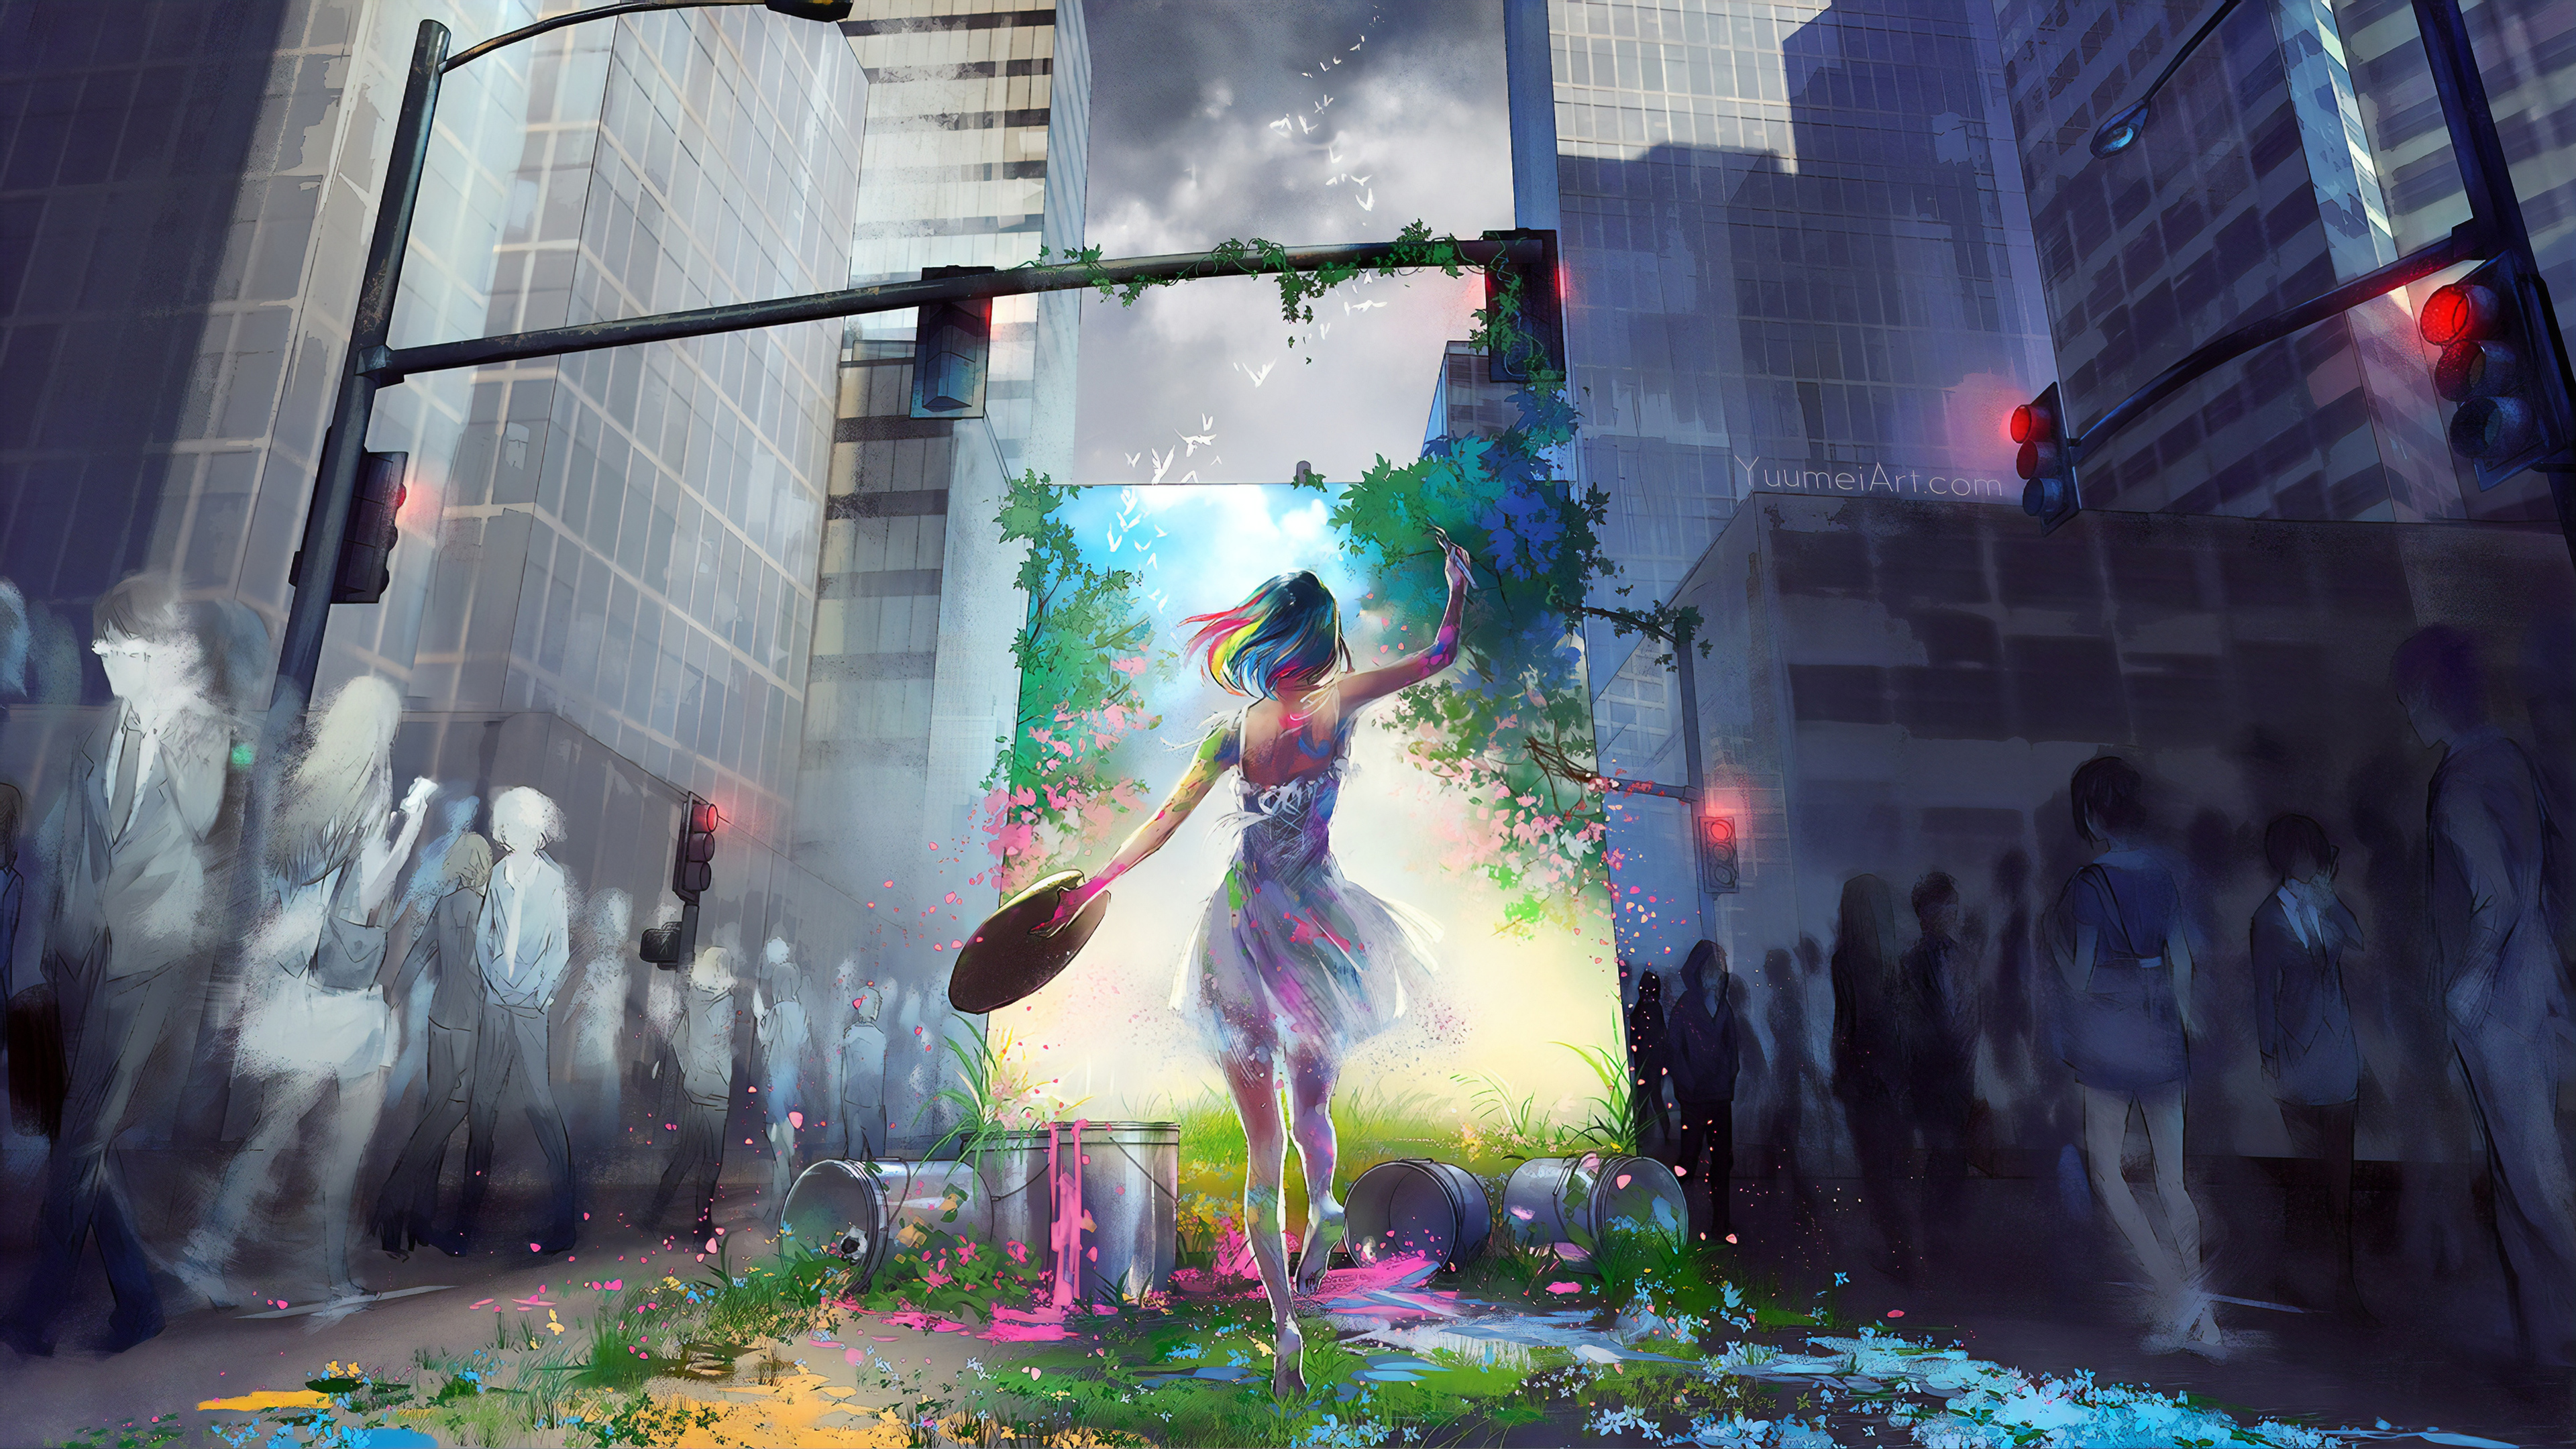 Anime 3840x2160 digital digital art artwork anime anime girls drawing pencil drawing digital painting painting landscape city cityscape people street colorful nature architecture building Yuumei fantasy art outdoors women fantasy girl plants paint brushes sky skyscraper skyscape frame dress Rainbow hair painters crowds path traveller